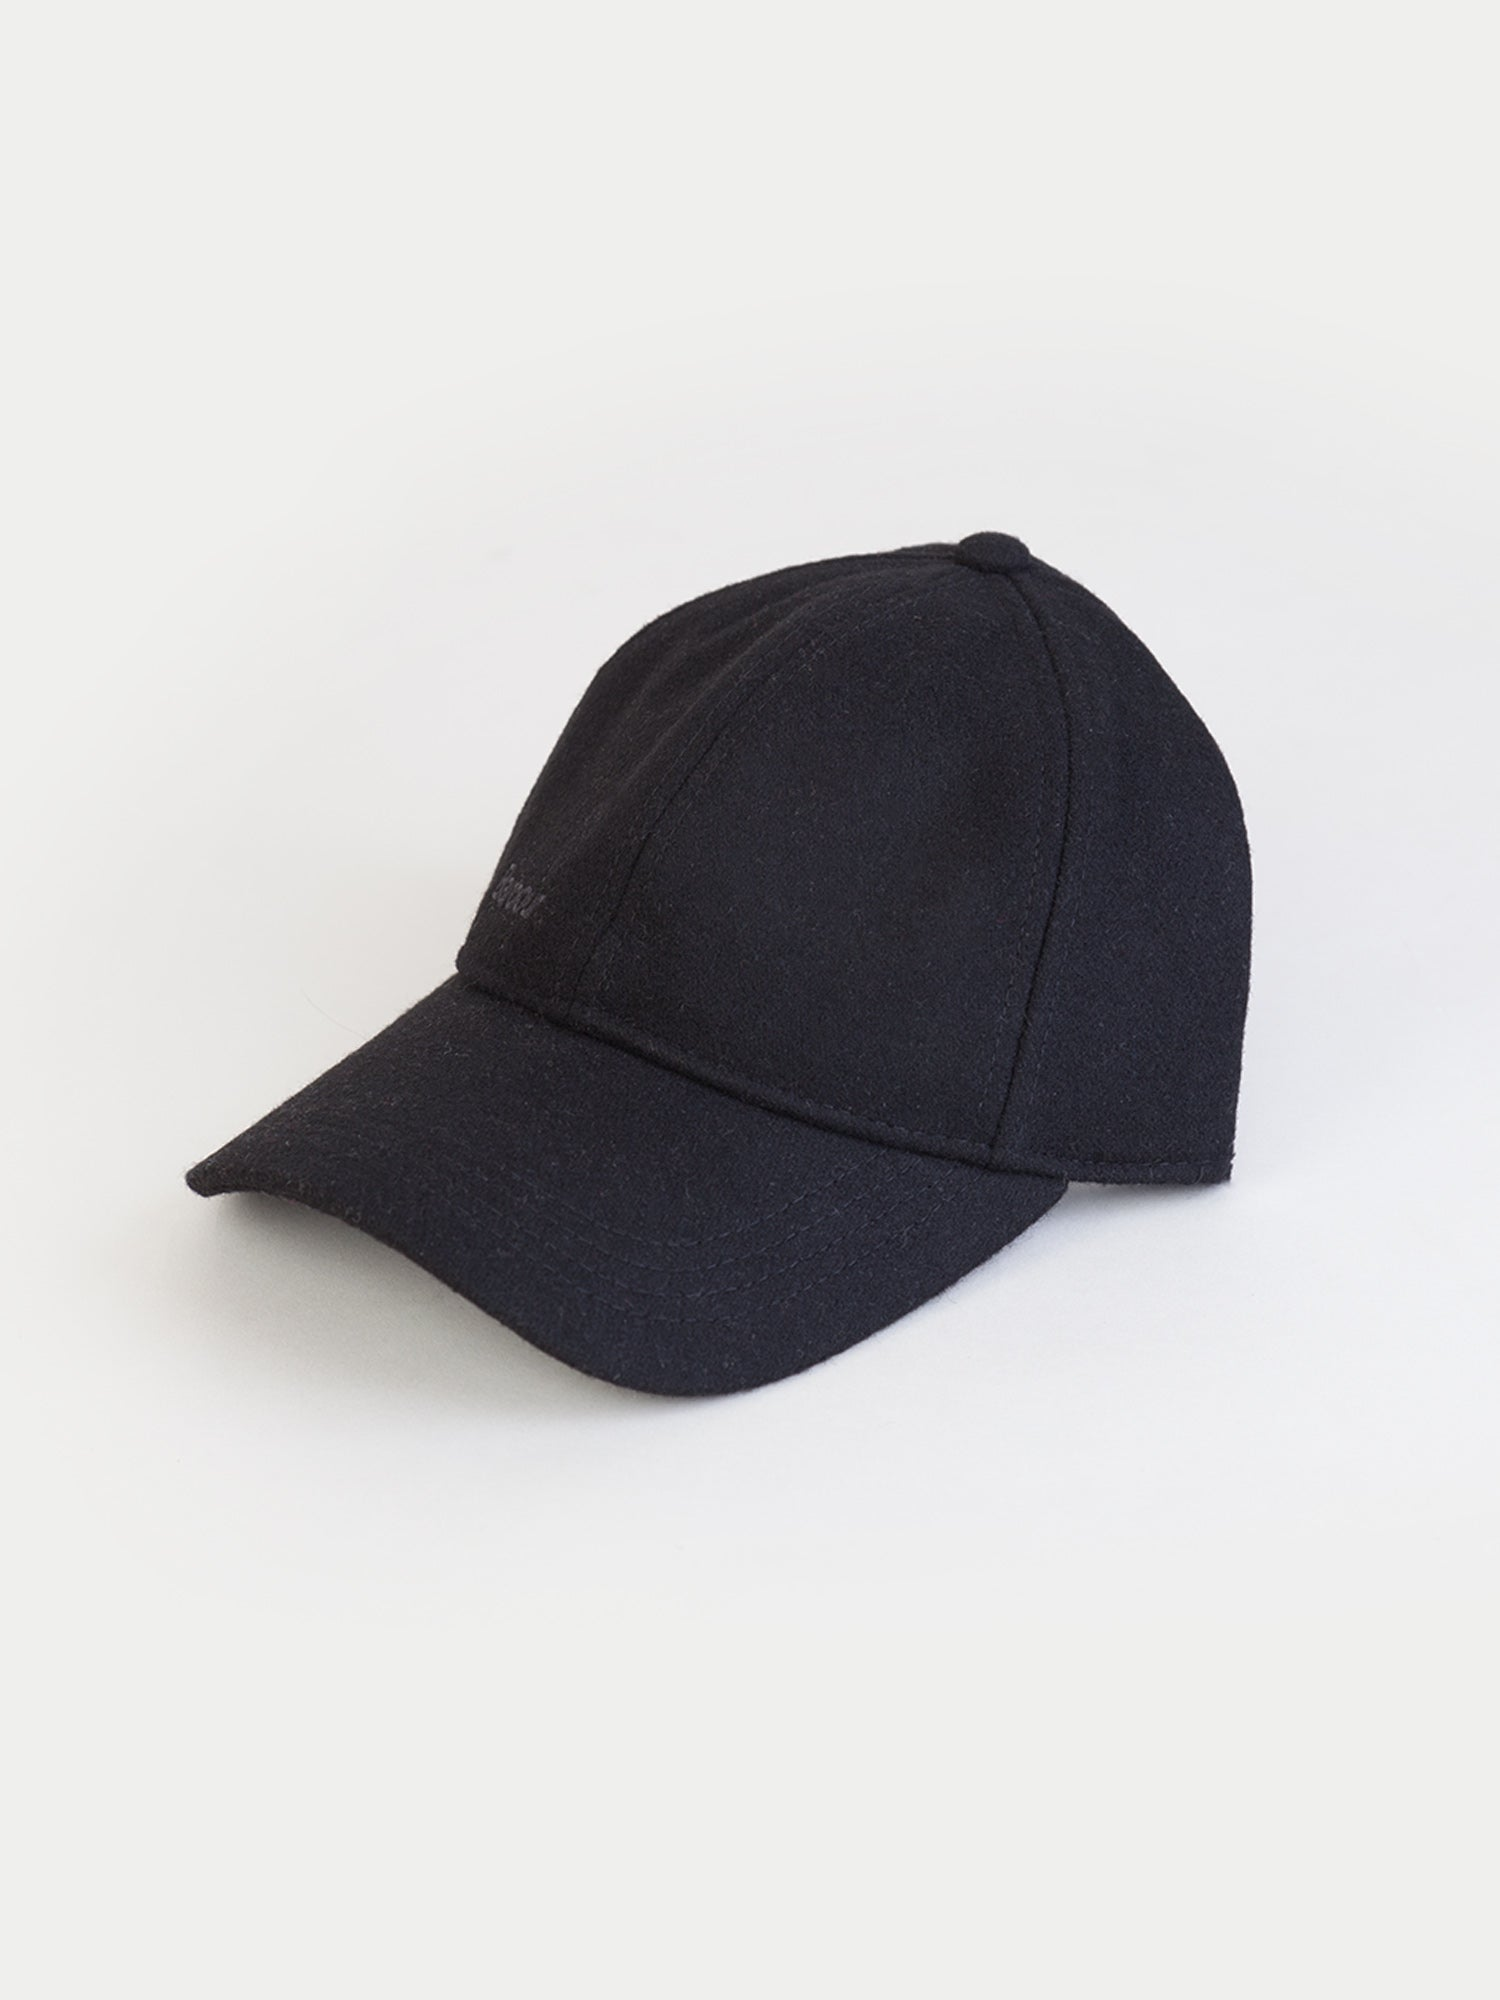 Barbour Coopworth Sports Cap (Black)